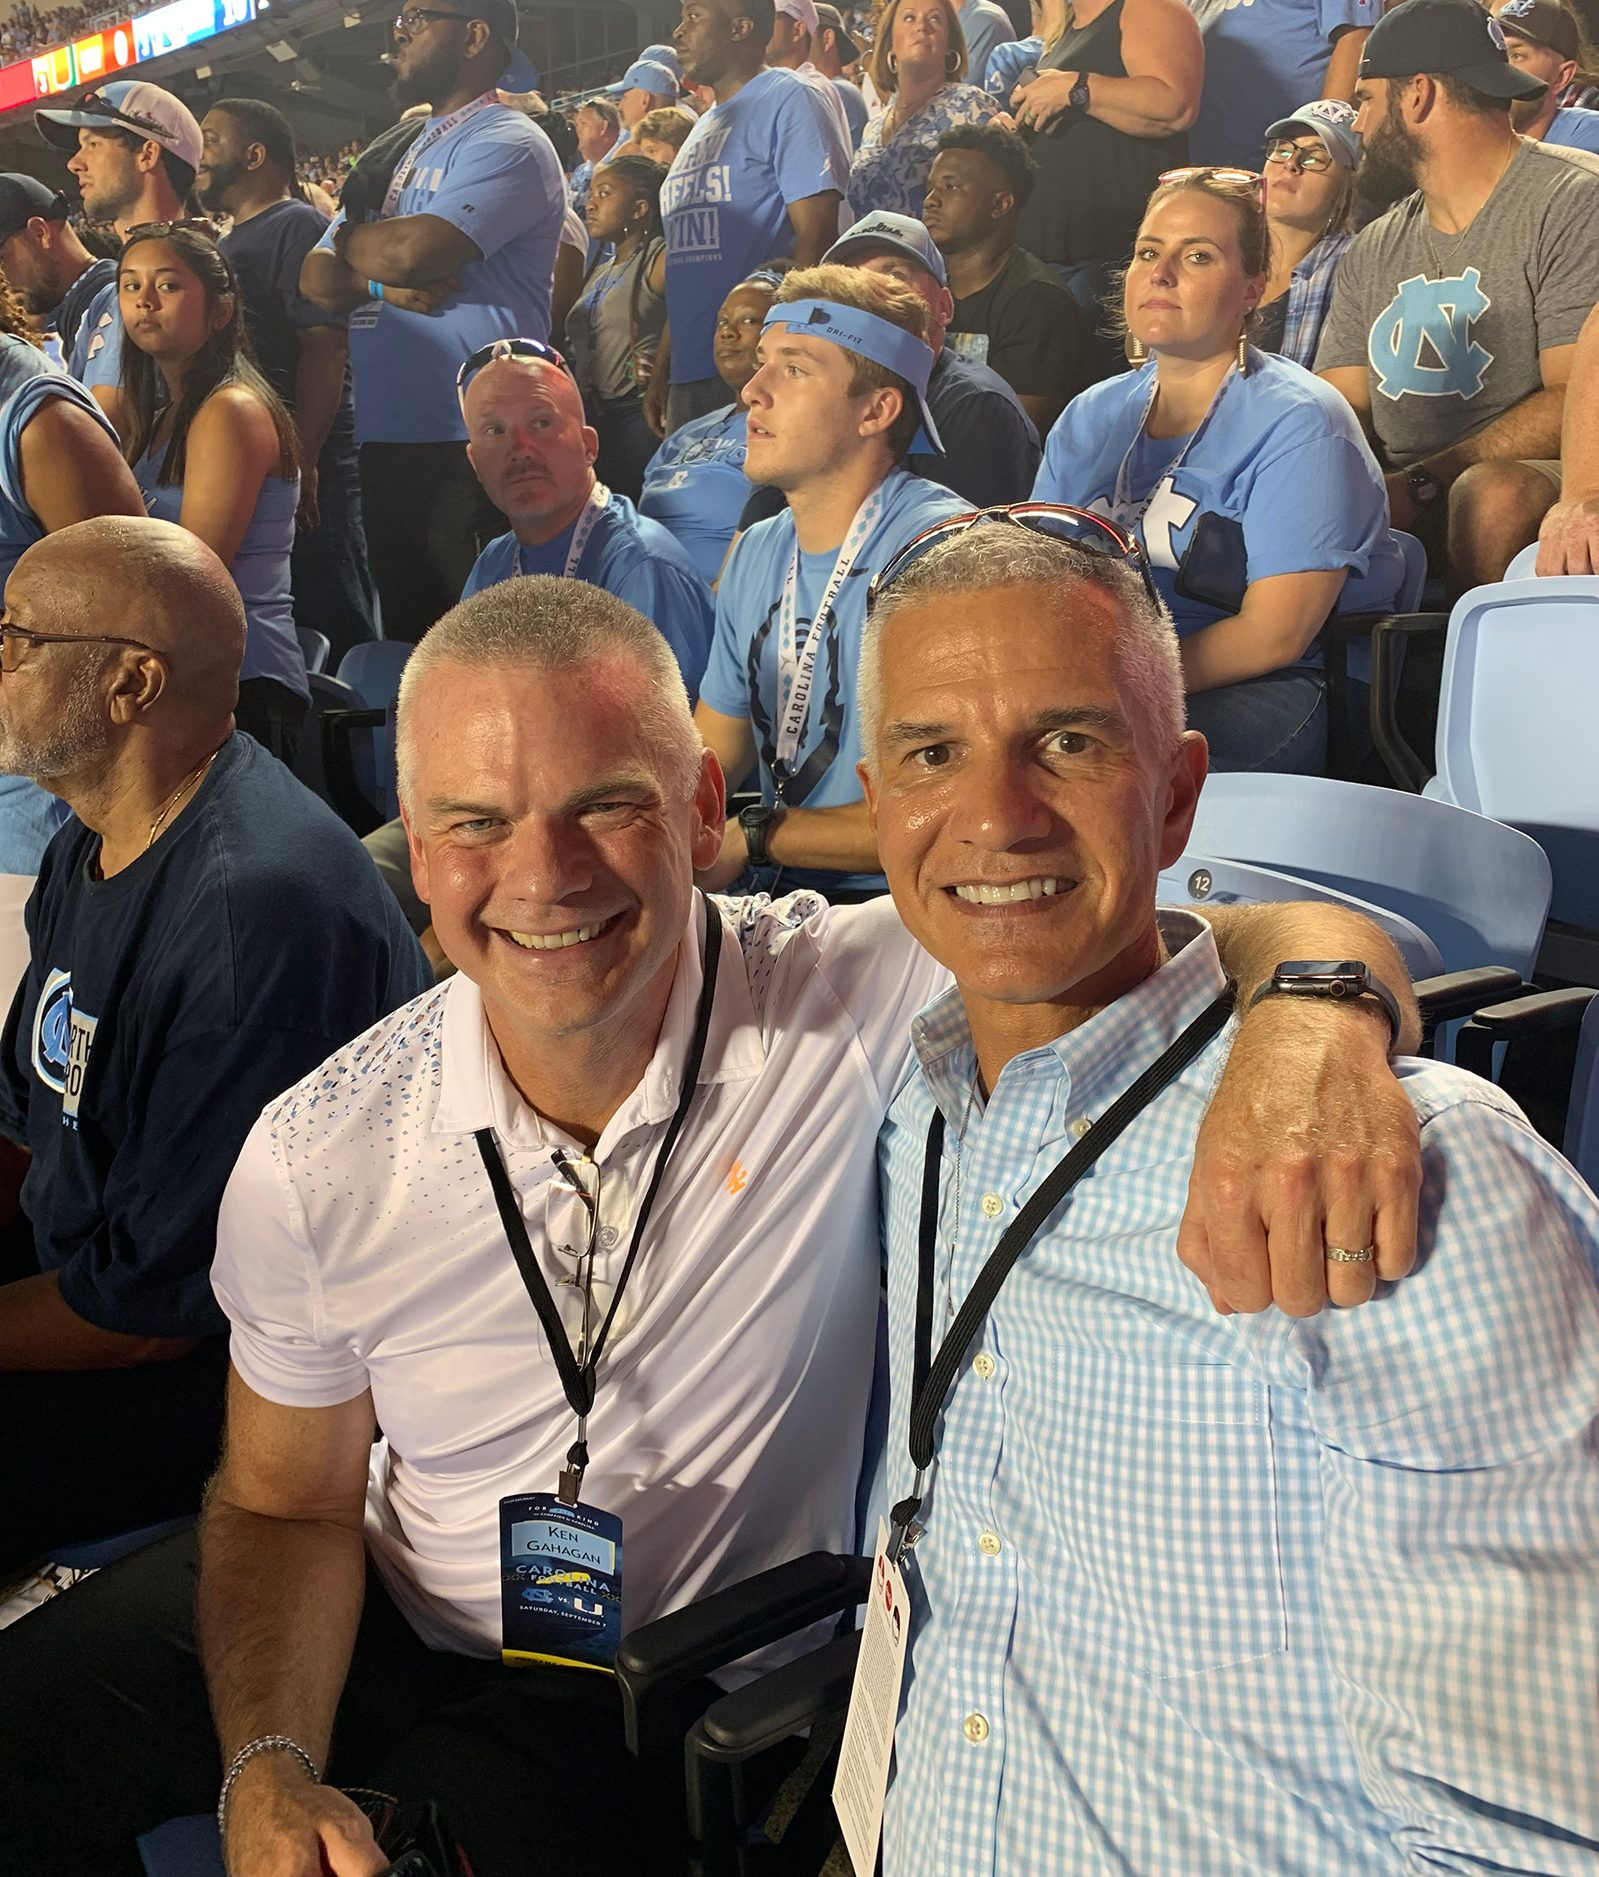 Kerry Bird and a friend at a basketball game in the Dean Dome.